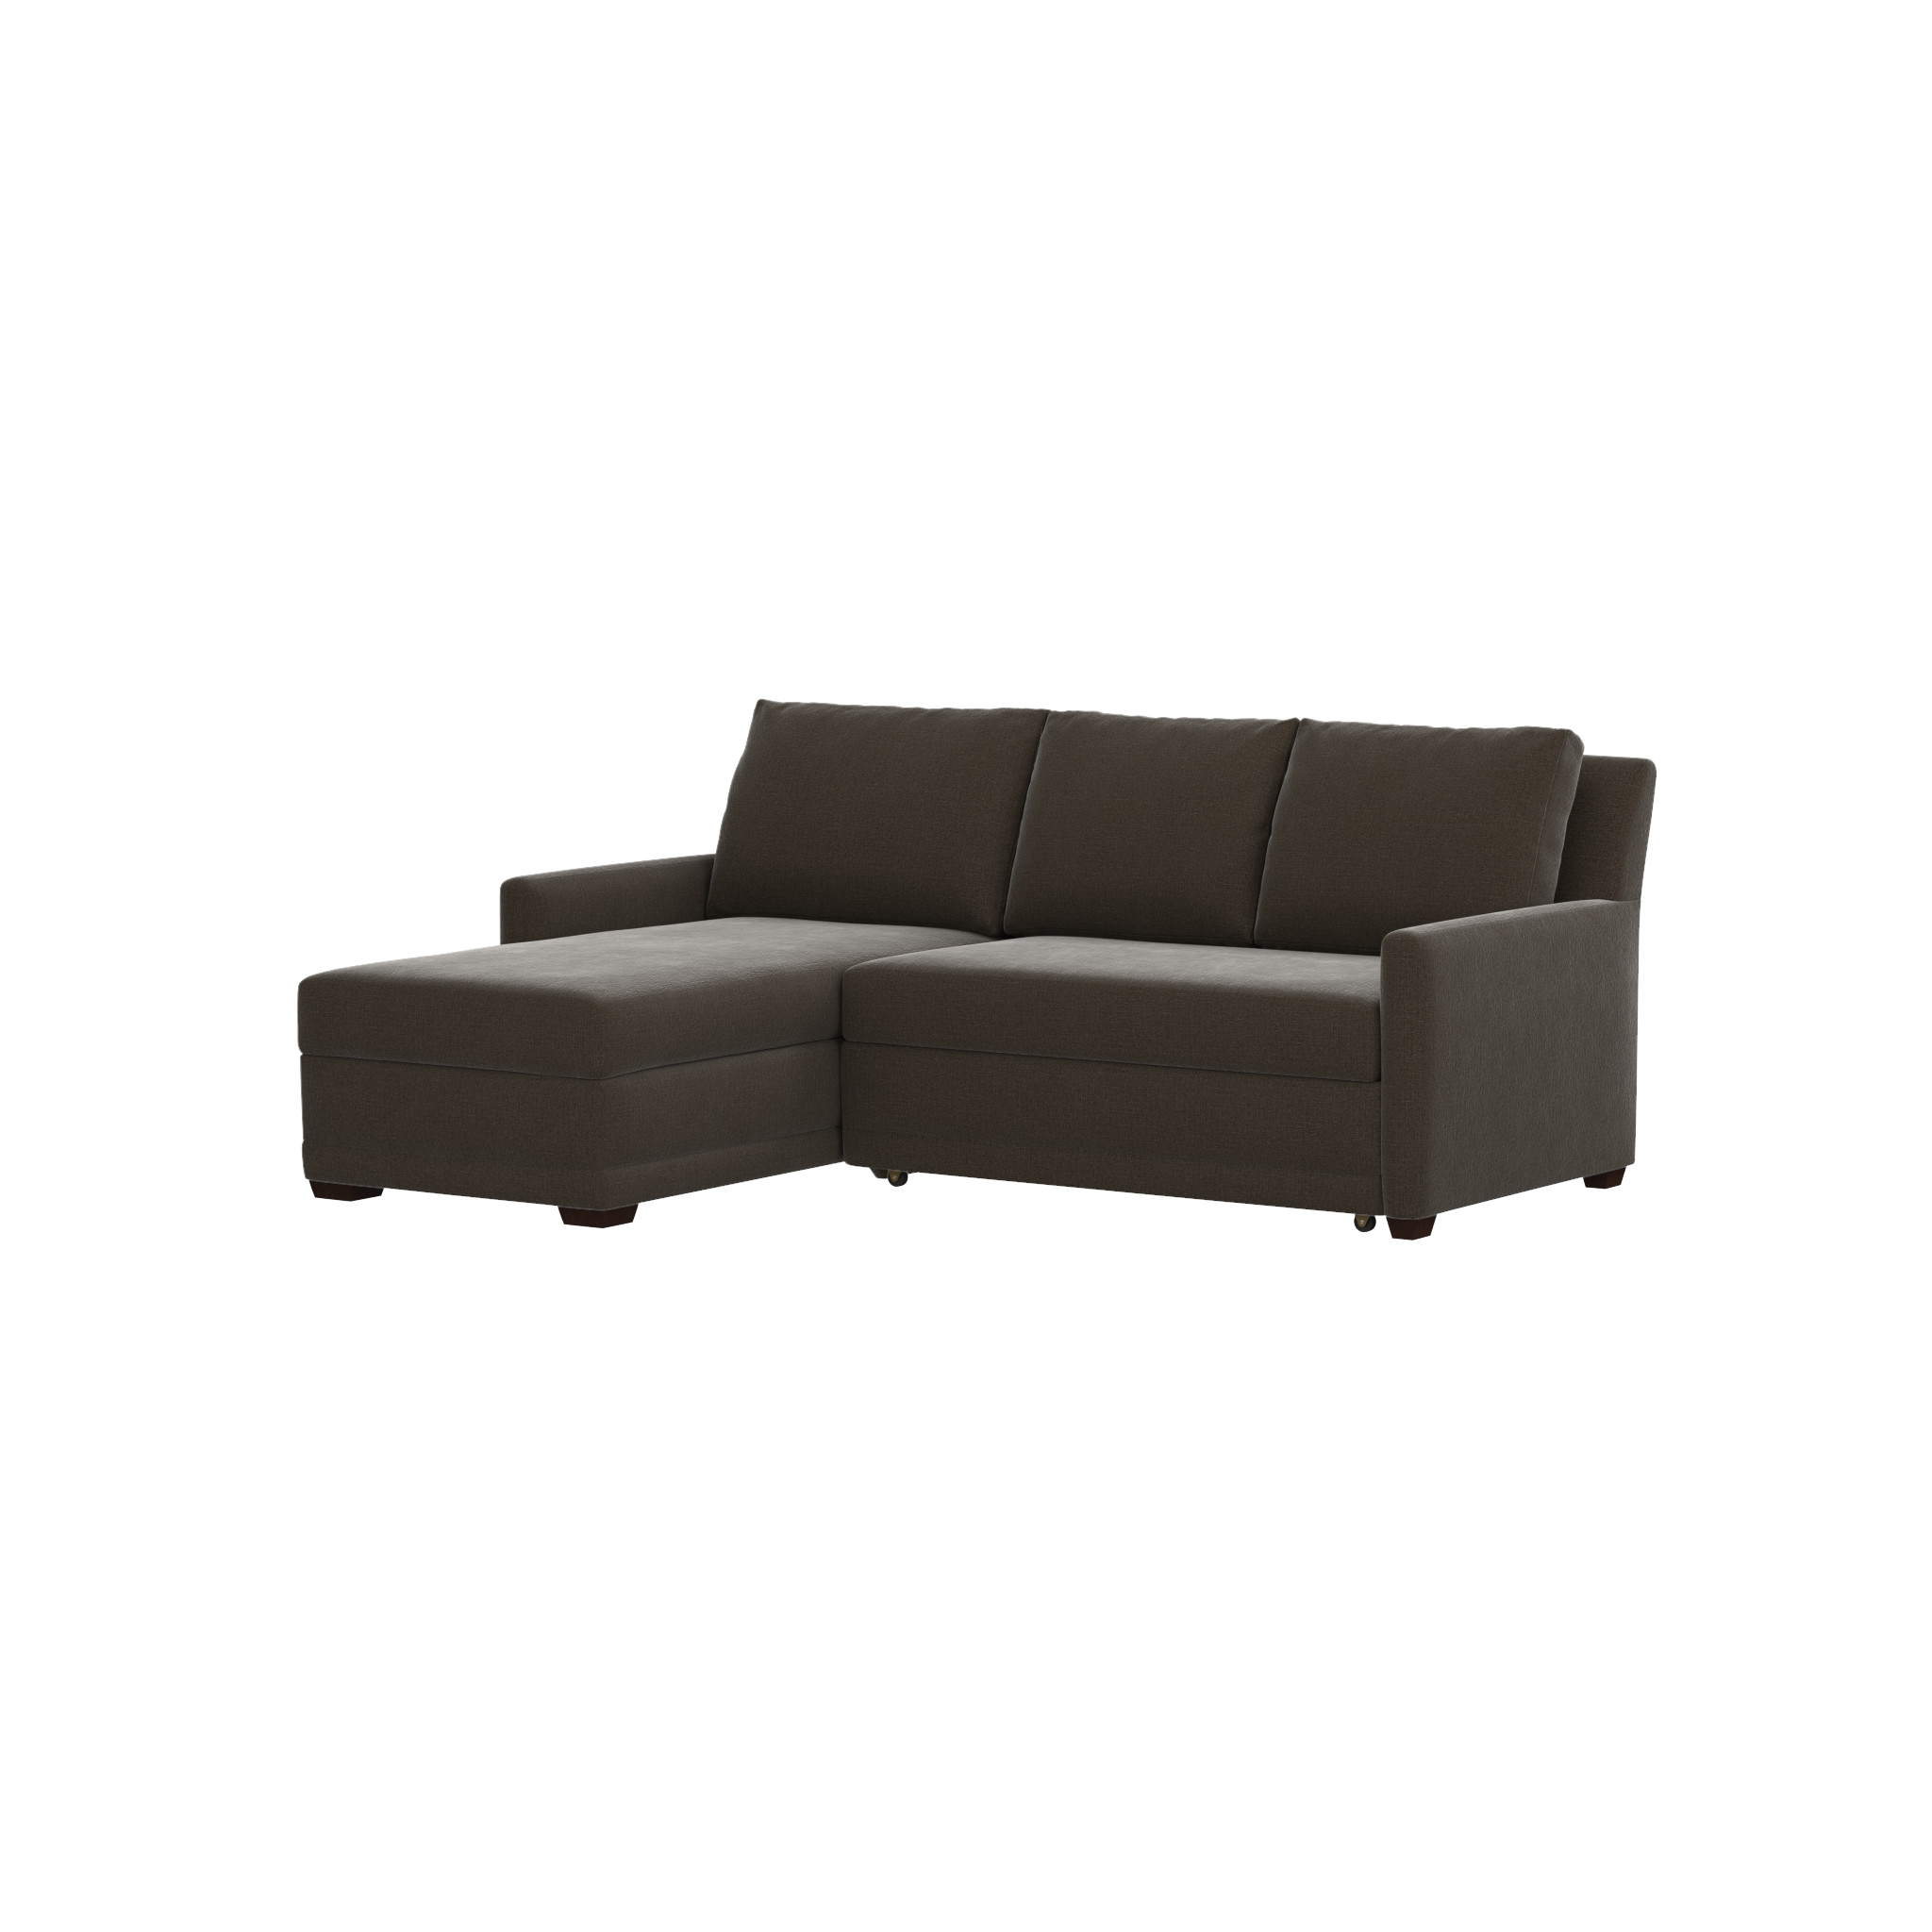 Reston 2 Piece Sleeper Sofa | Crate And Barrel Intended For Crate And Barrel Sofa Sleepers (Image 14 of 20)